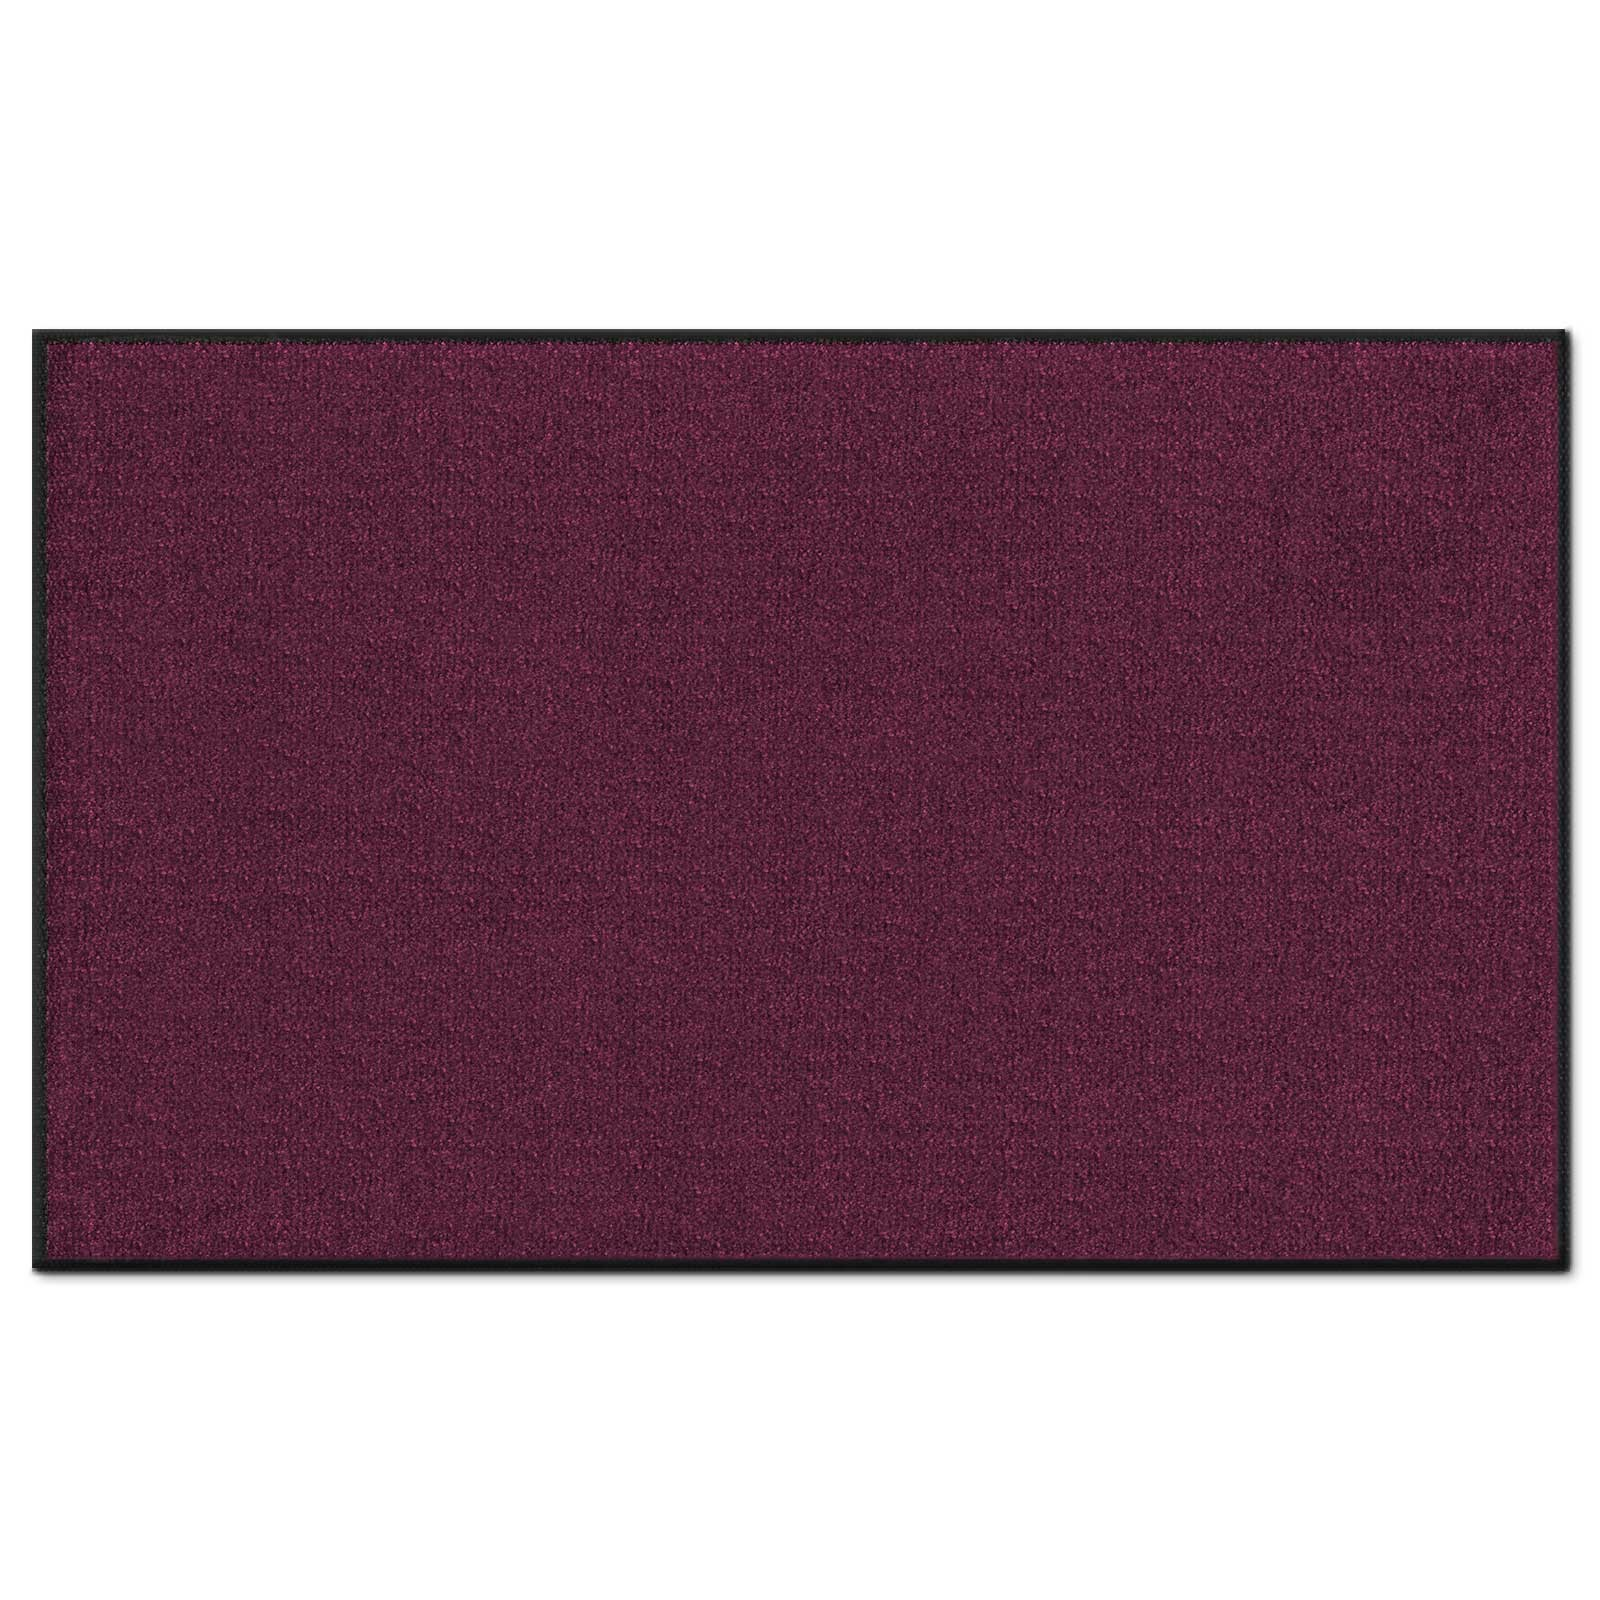 tapis aubergine 8 id es de d coration int rieure french decor. Black Bedroom Furniture Sets. Home Design Ideas